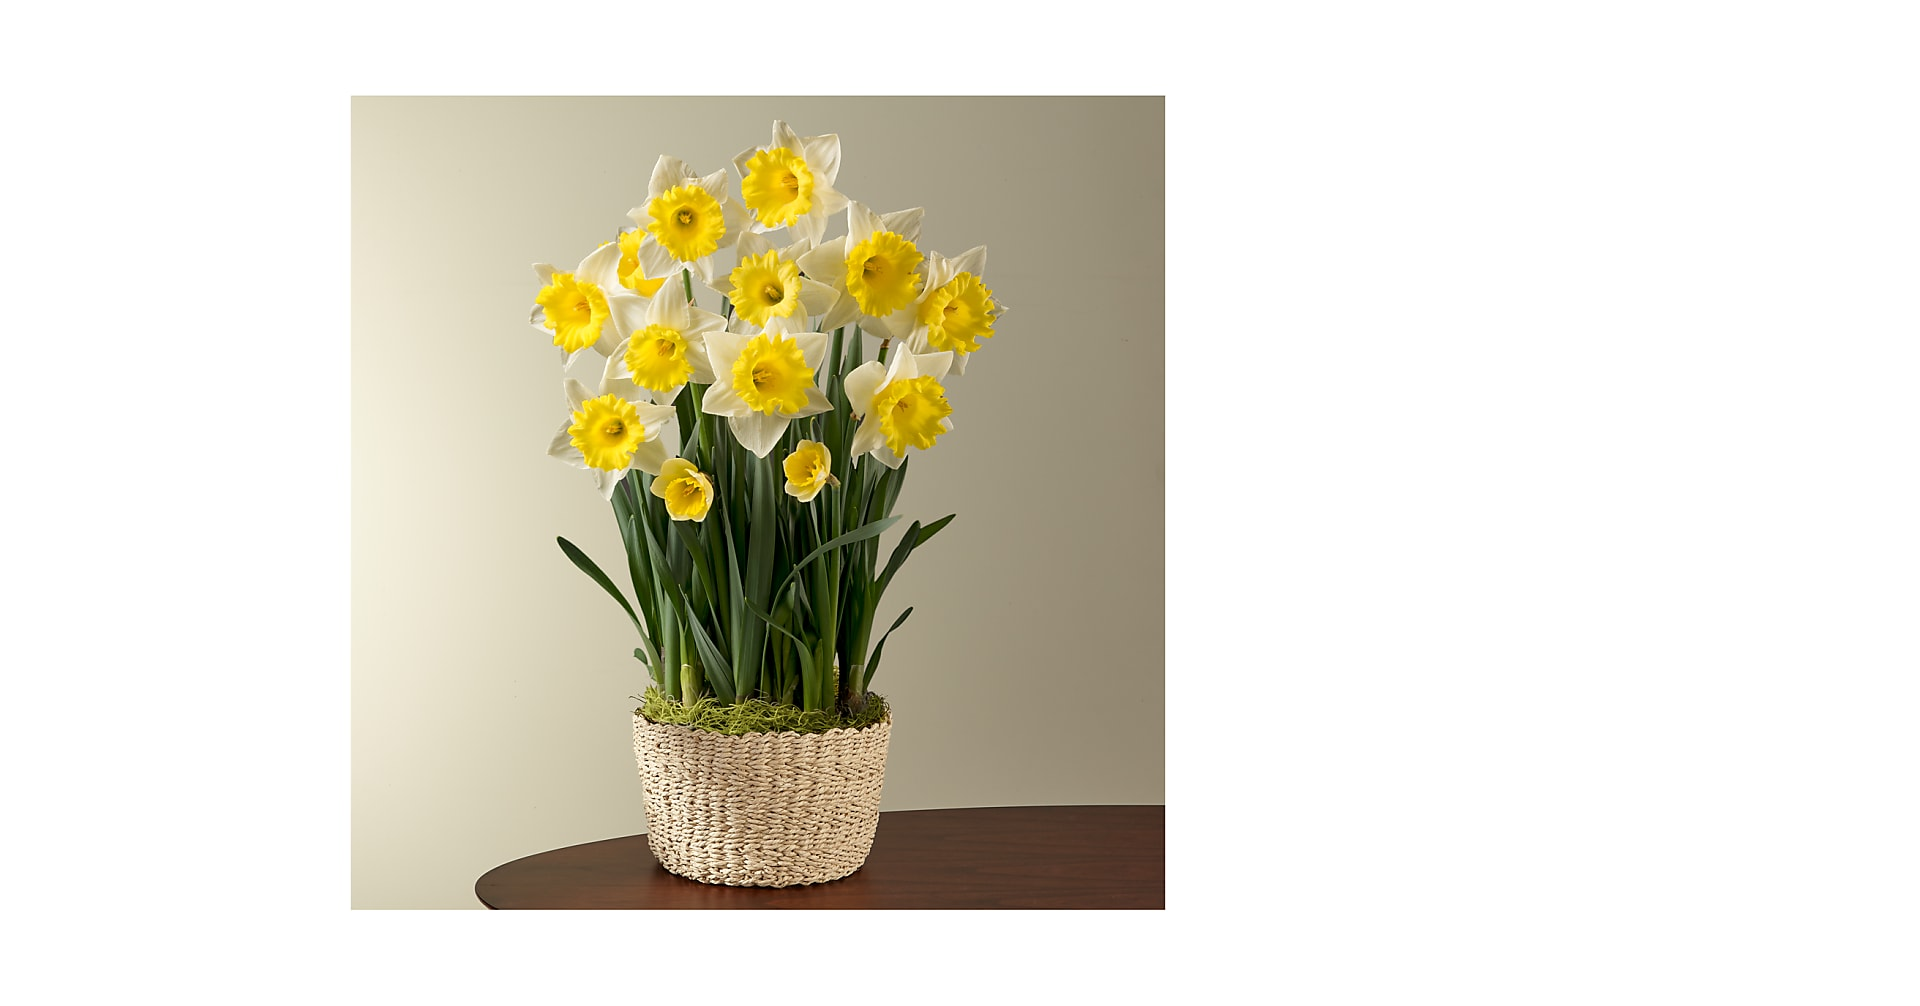 So Golden Daffodil Bulb Garden - Image 1 Of 3